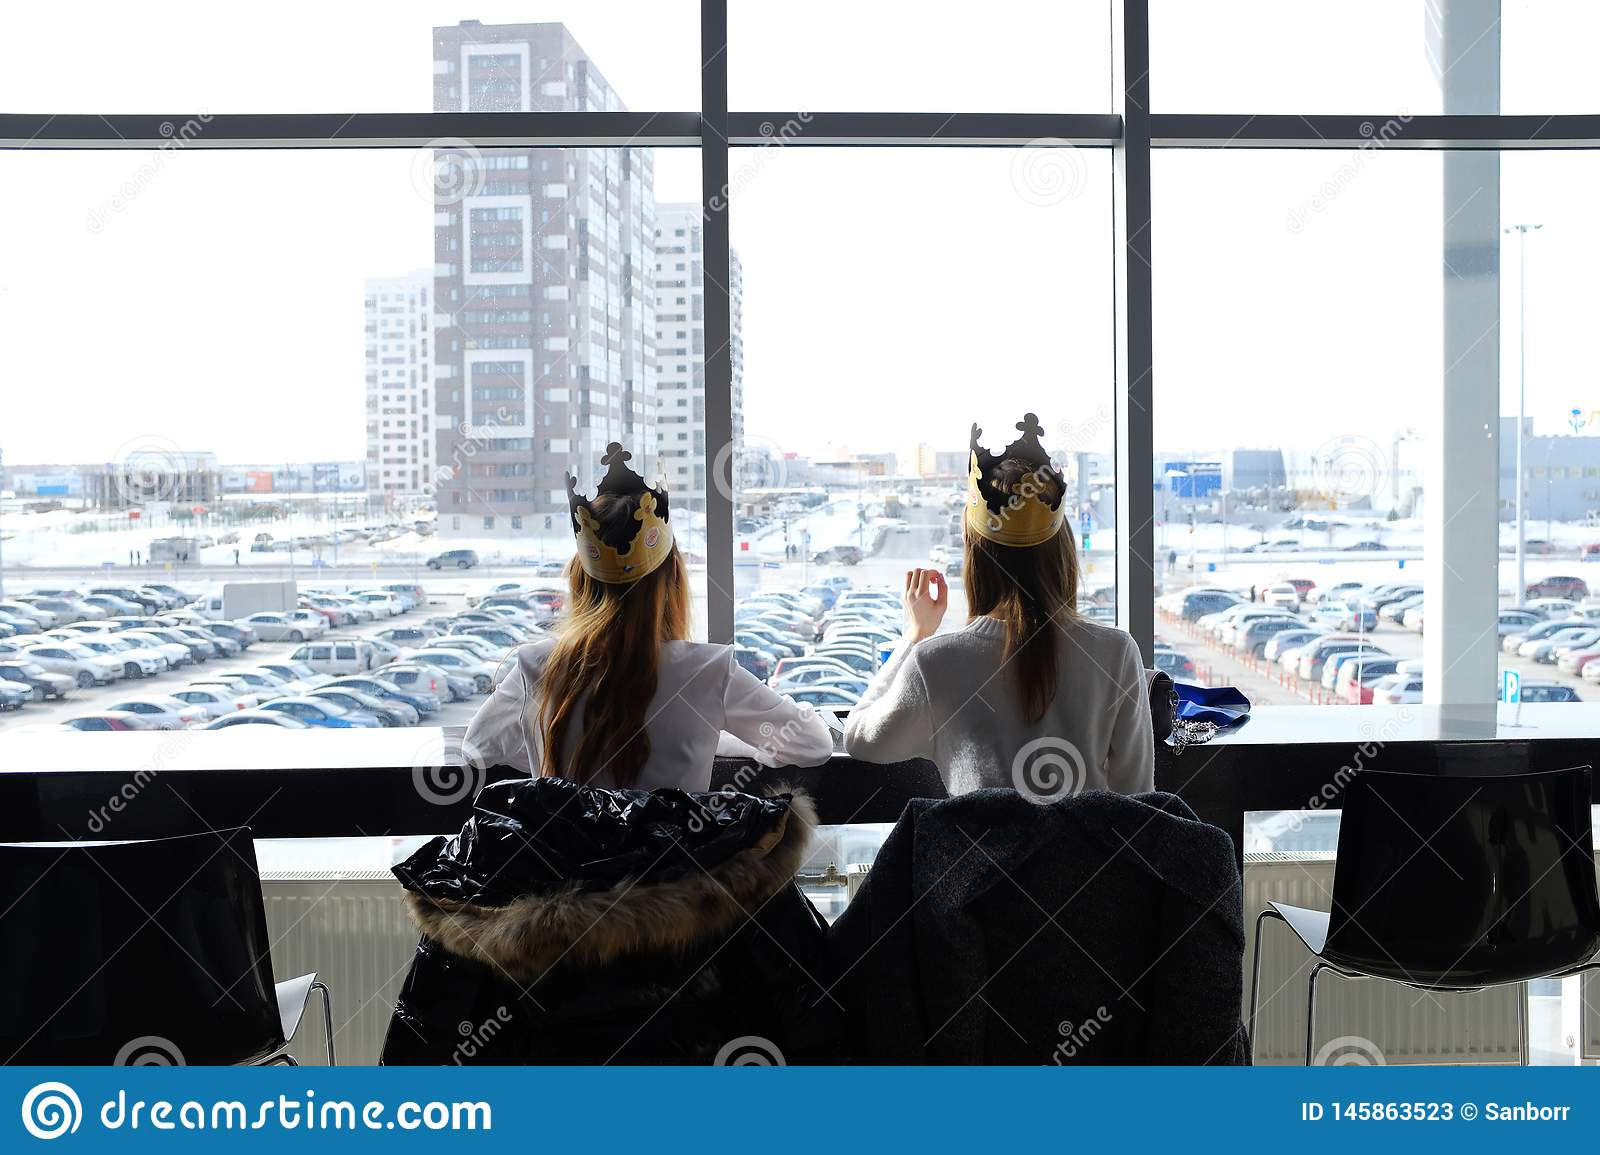 Russia, Tyumen, 30.03.2019. Teenage girls in crowns from Burger king for lunch at the Mall. Girls eat in the shopping center. Rear